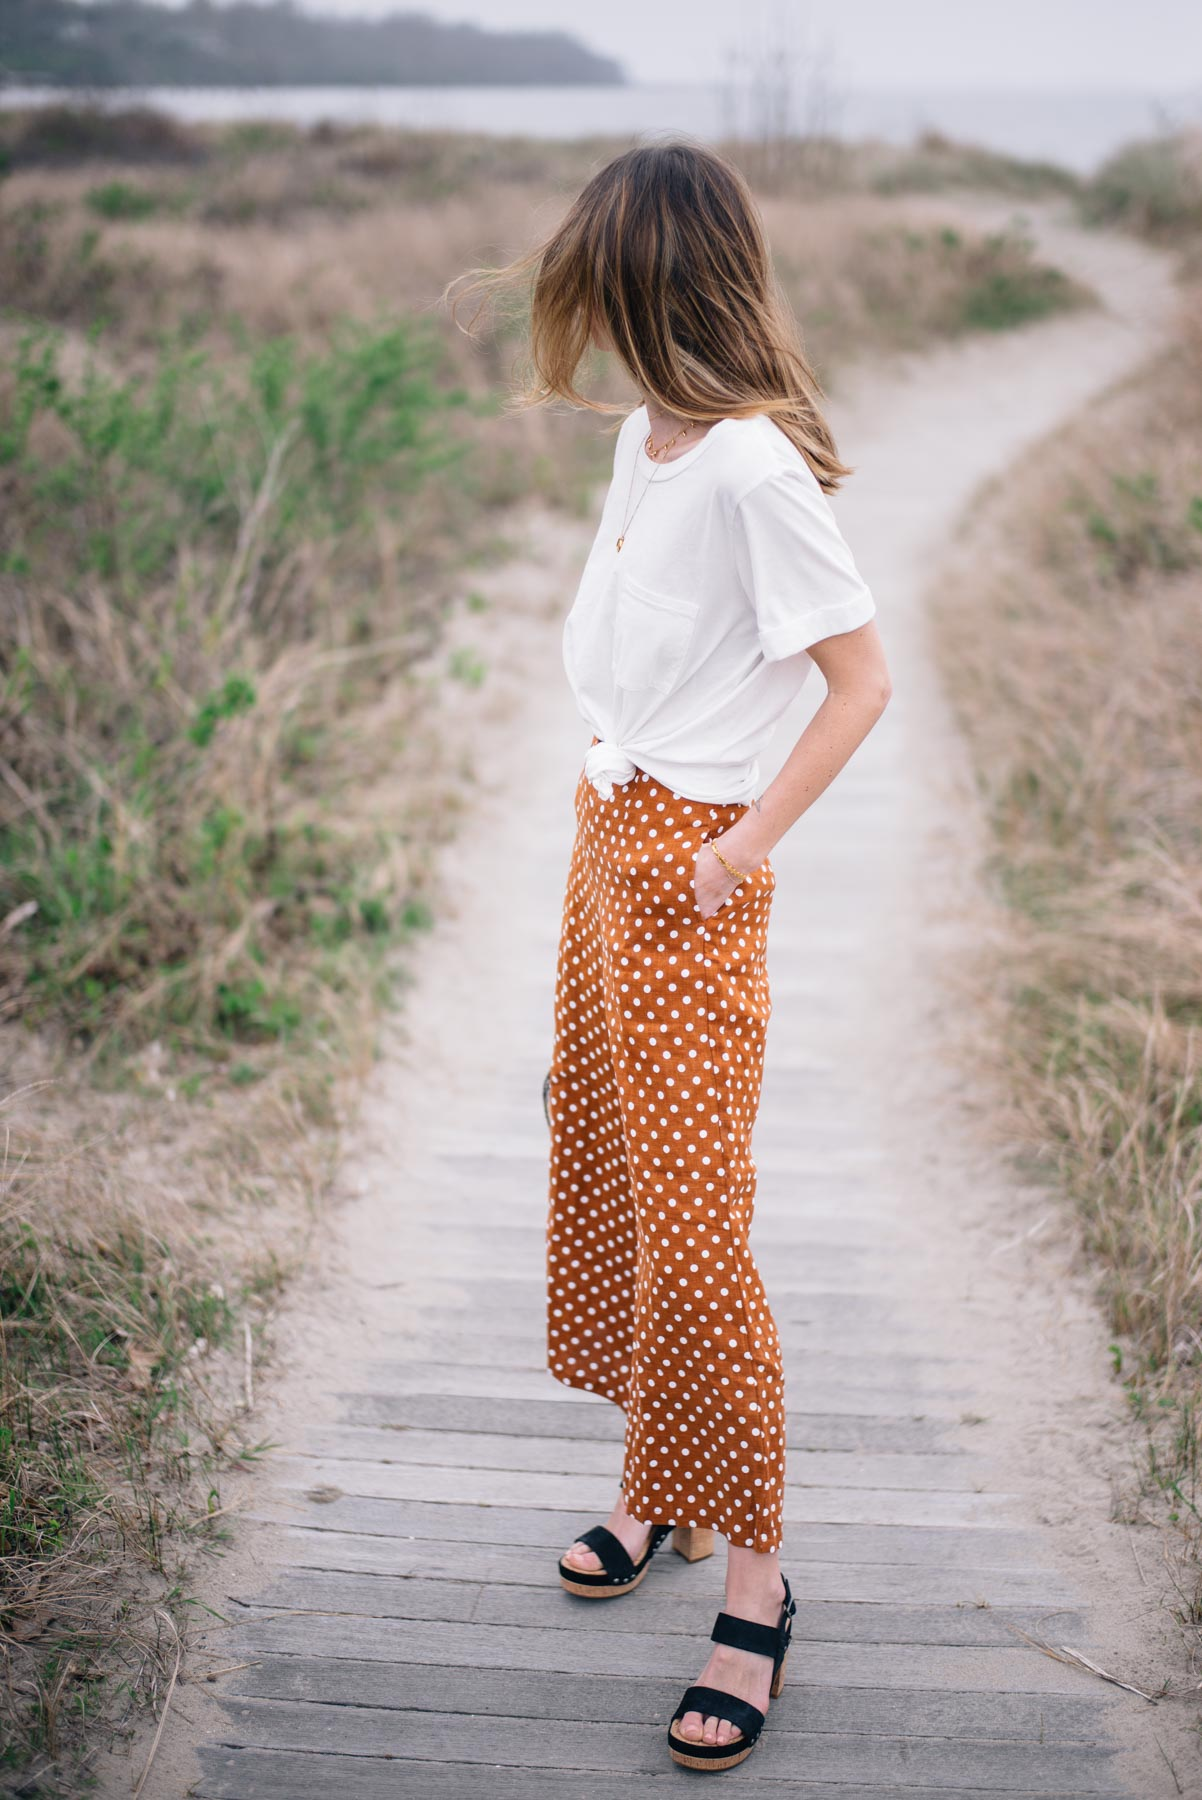 Jess Ann Kirby styles a spring look with statement wide leg pants and a simple tee from Anthropologie